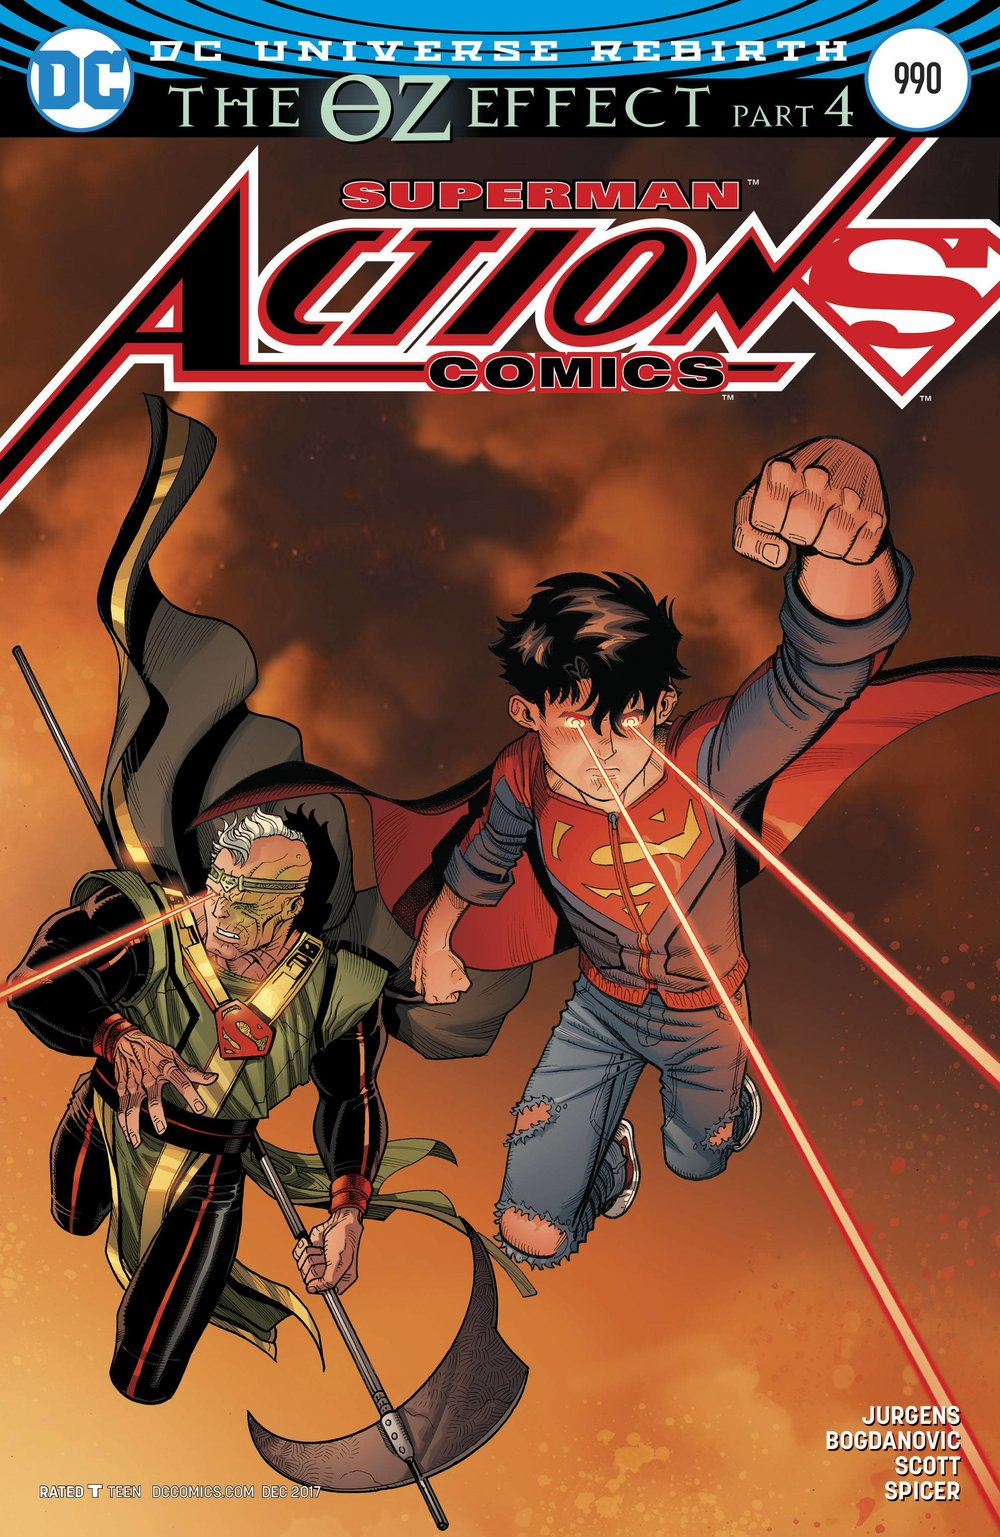 ACTION COMICS 990 (OZ EFFECT).jpg